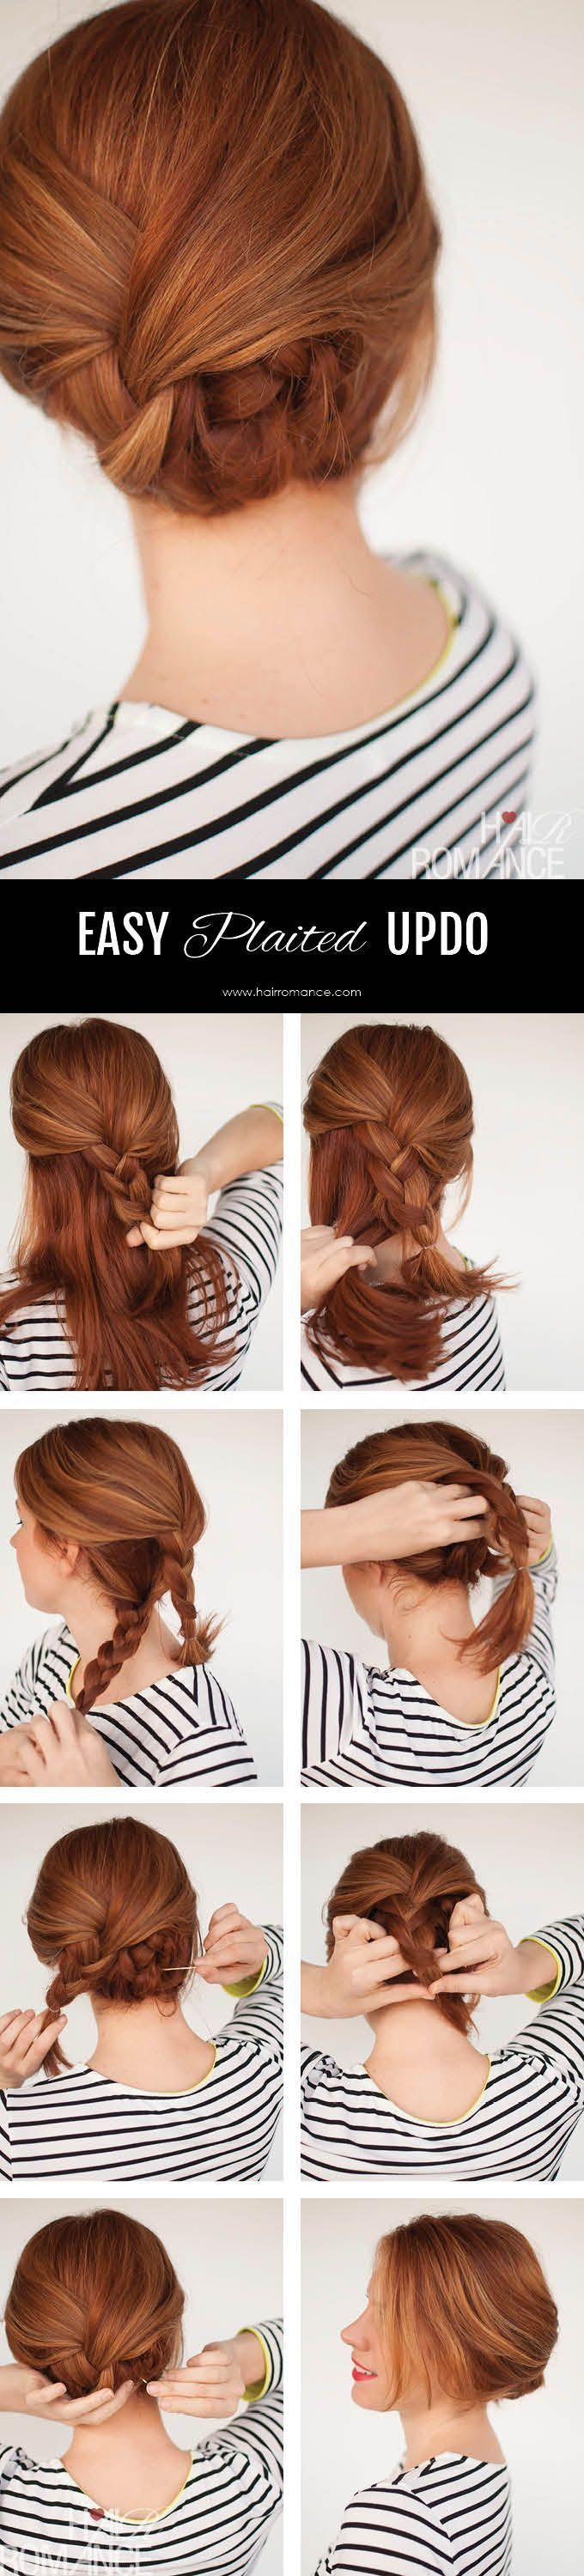 798 best y Hairstyles images on Pinterest